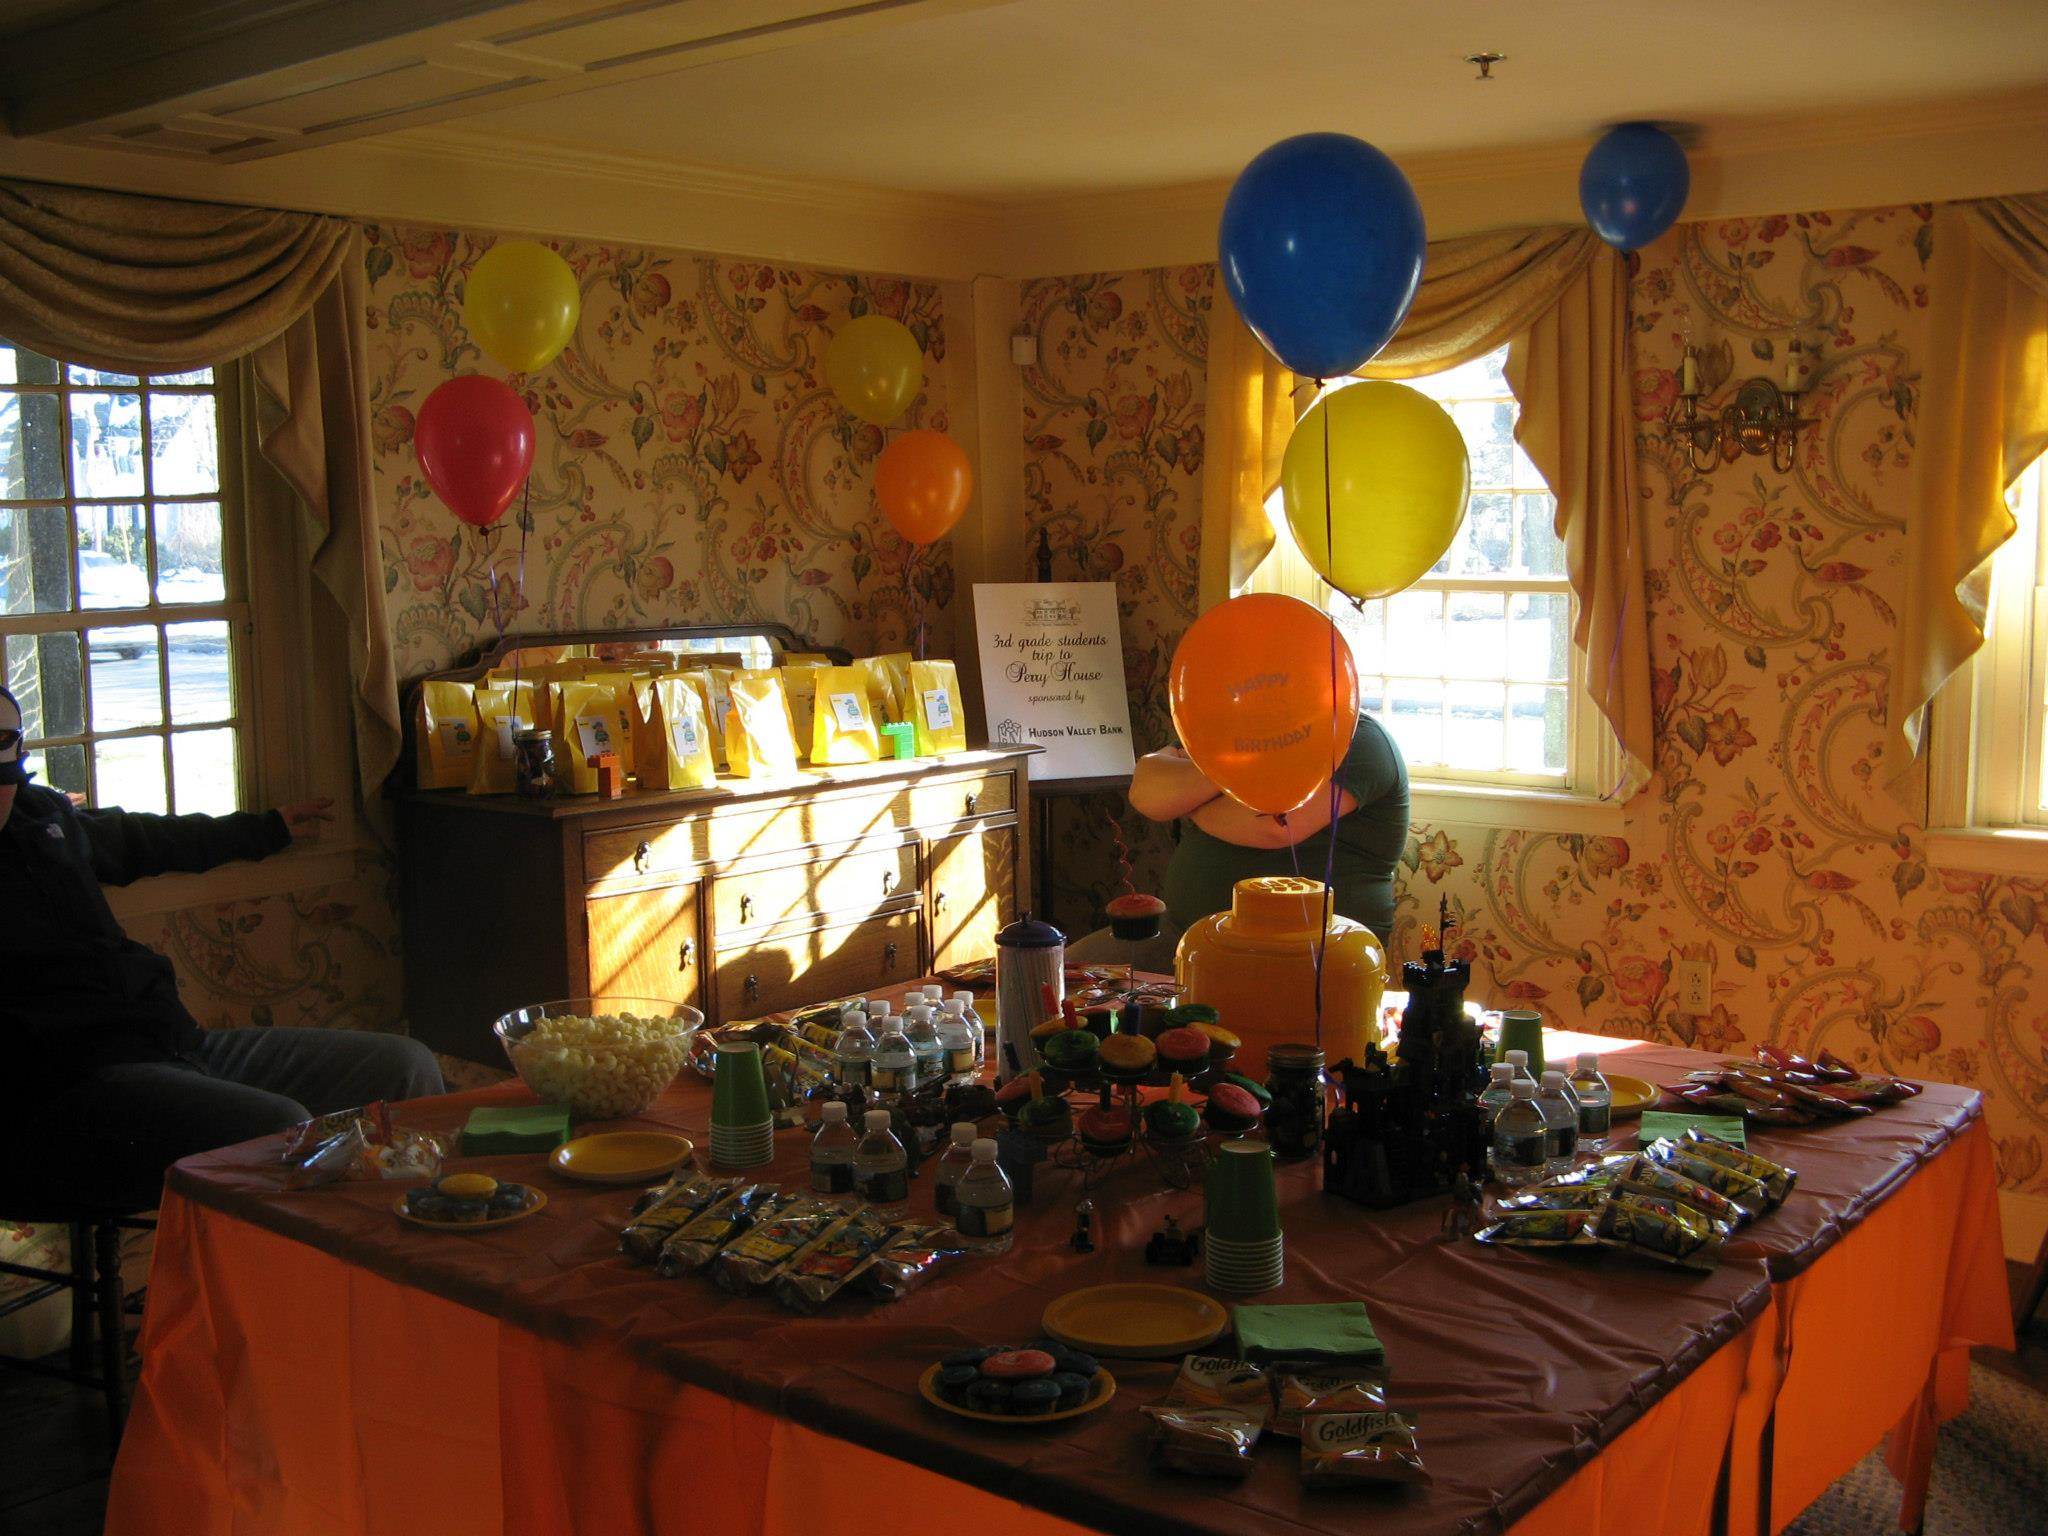 Fun And Cheap Fairfield County Rental Halls For Birthday